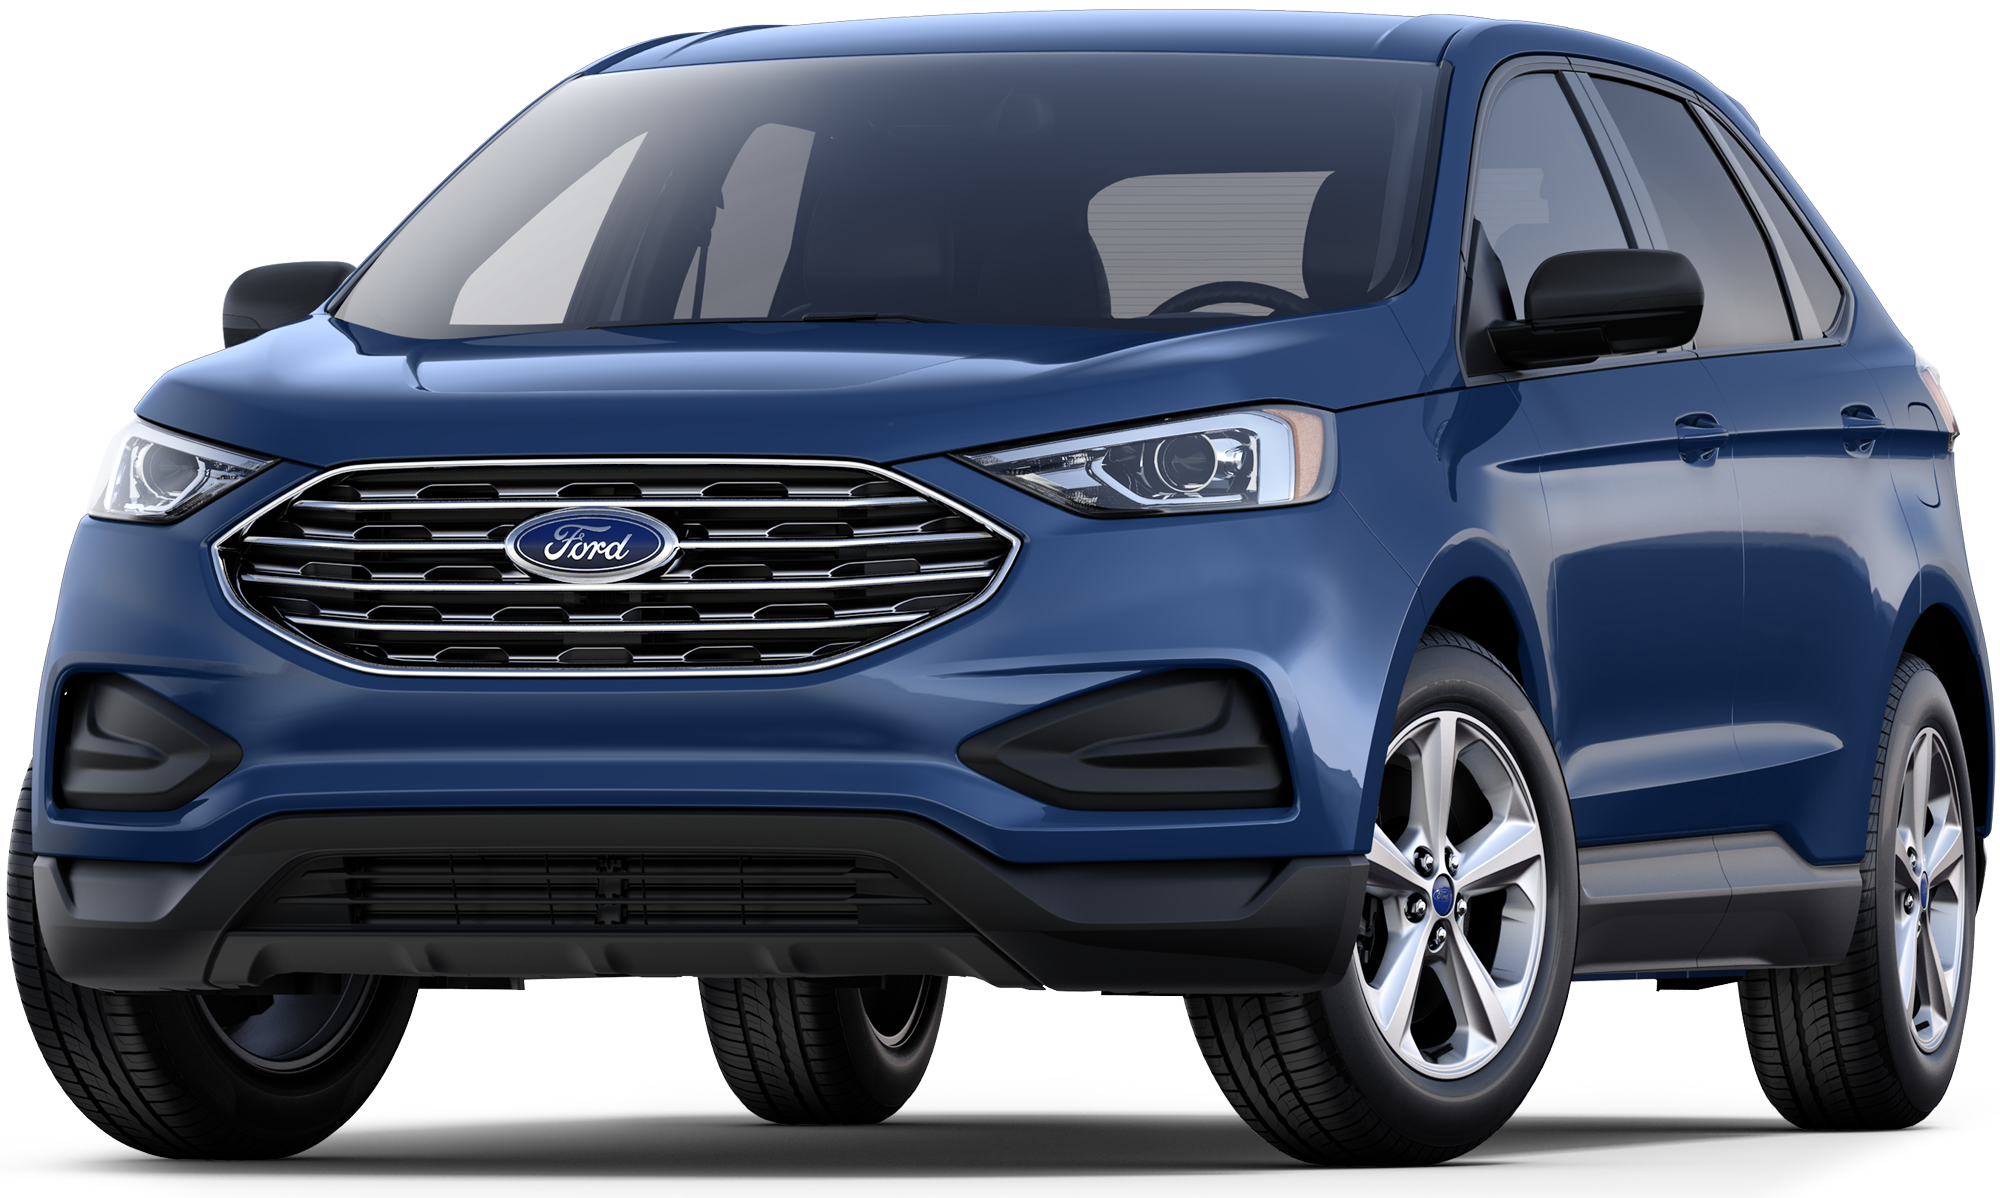 2020 Ford Edge Incentives, Specials & Offers in Vaughan ON